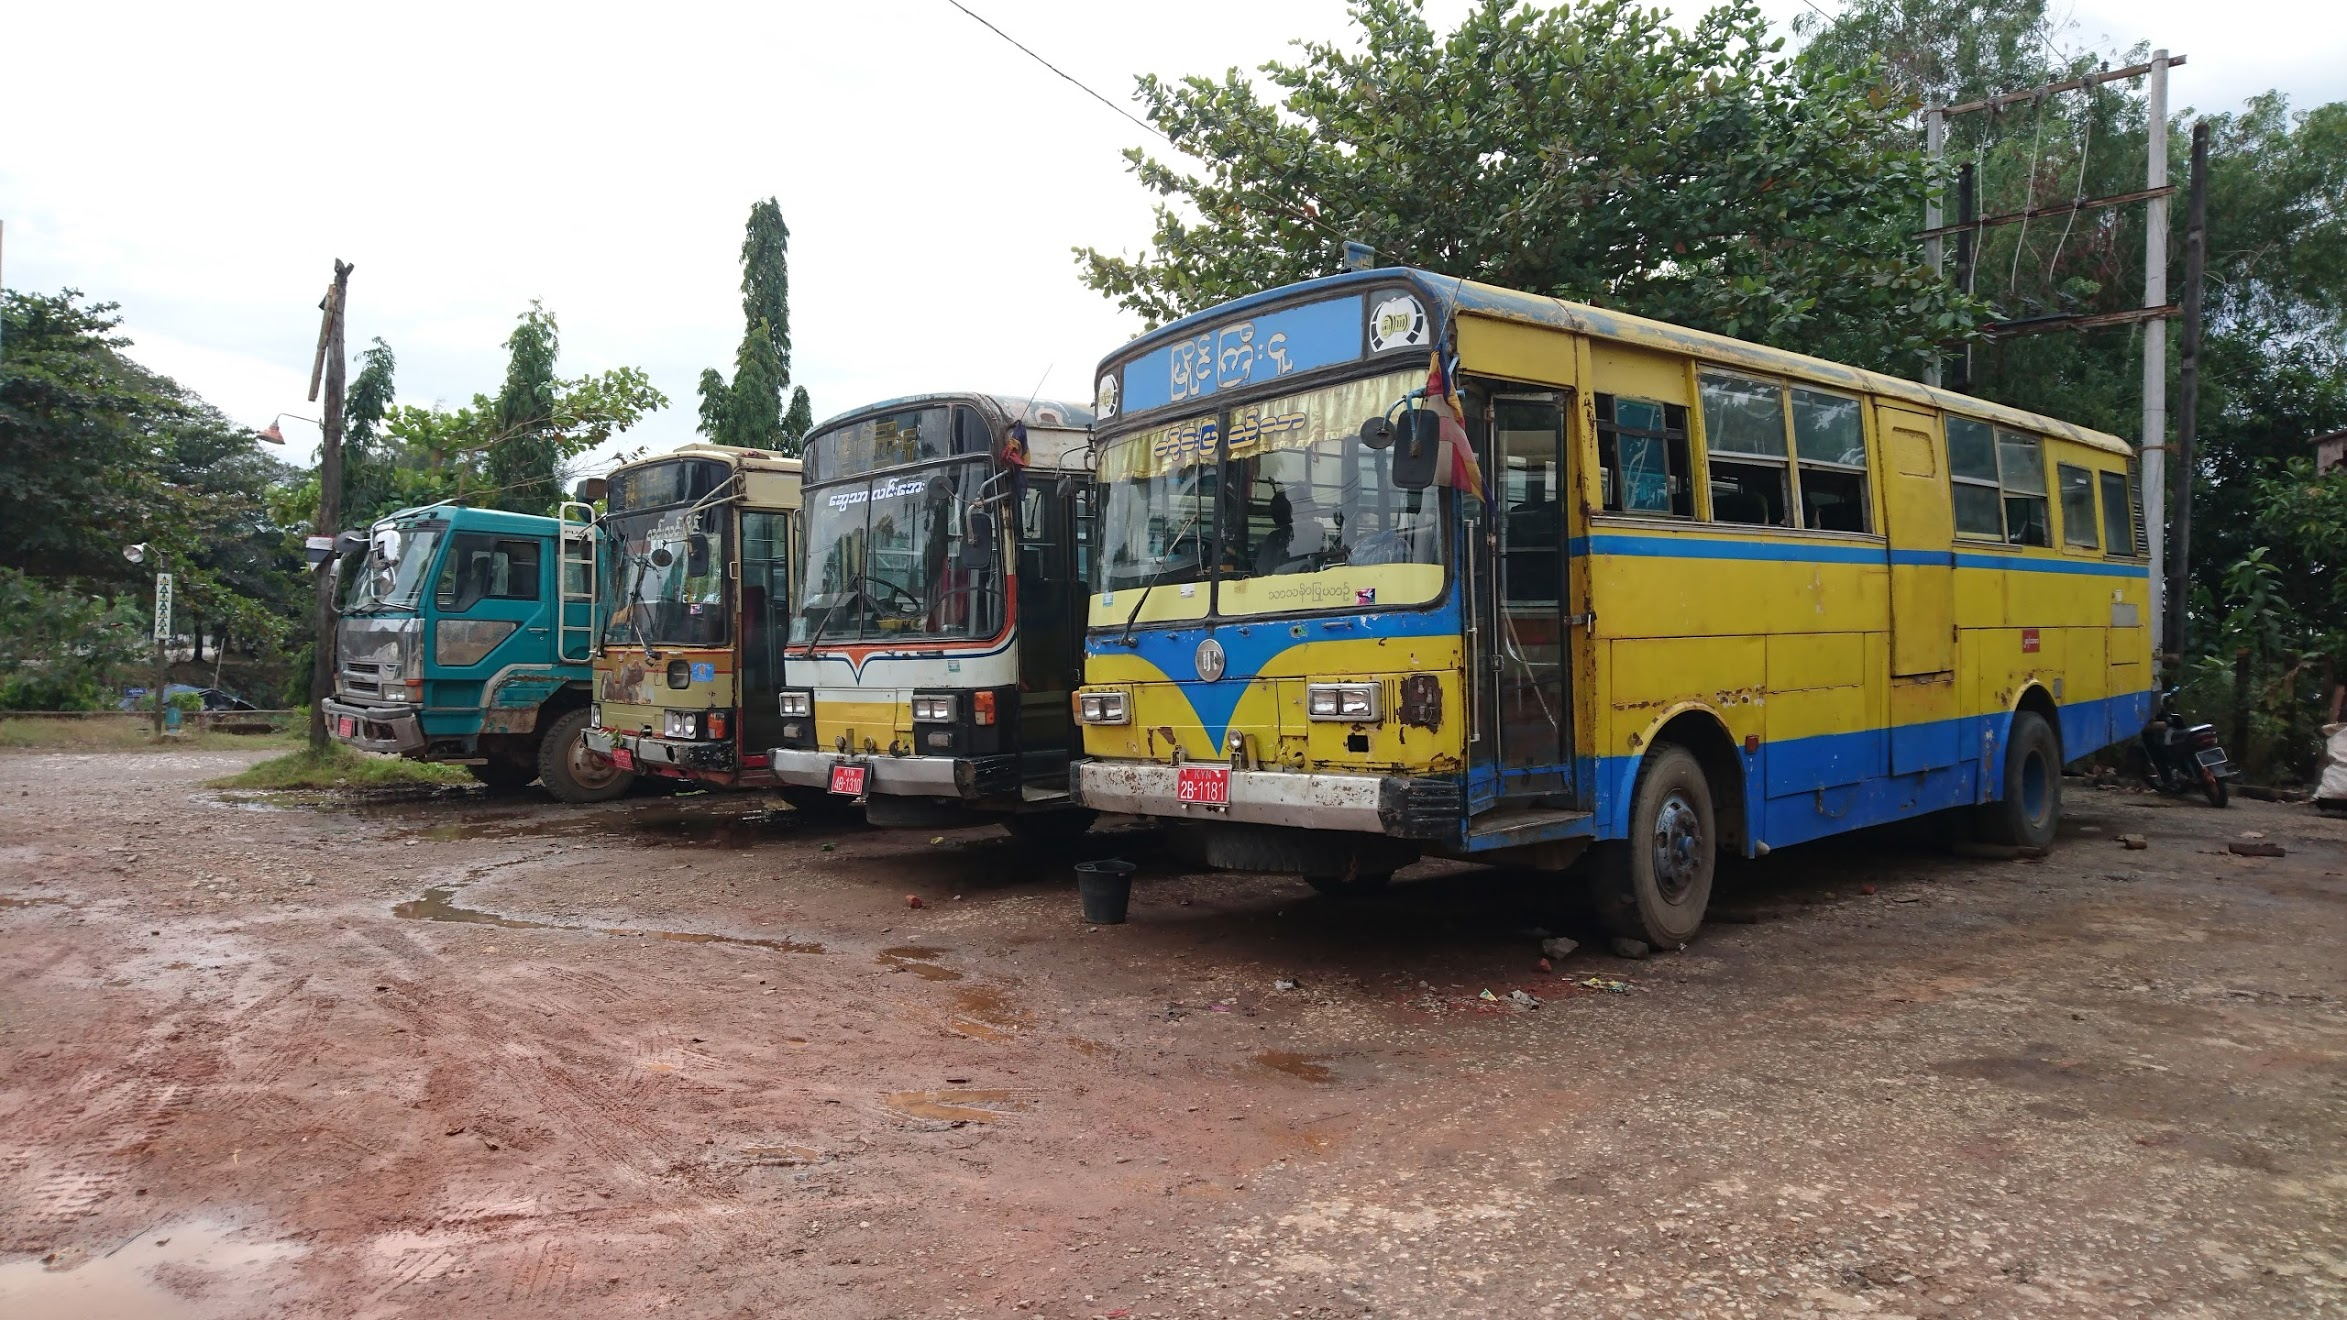 Knackered buses, all hand-me-downs from neighbouring countries, that are still patched up and in daily use.